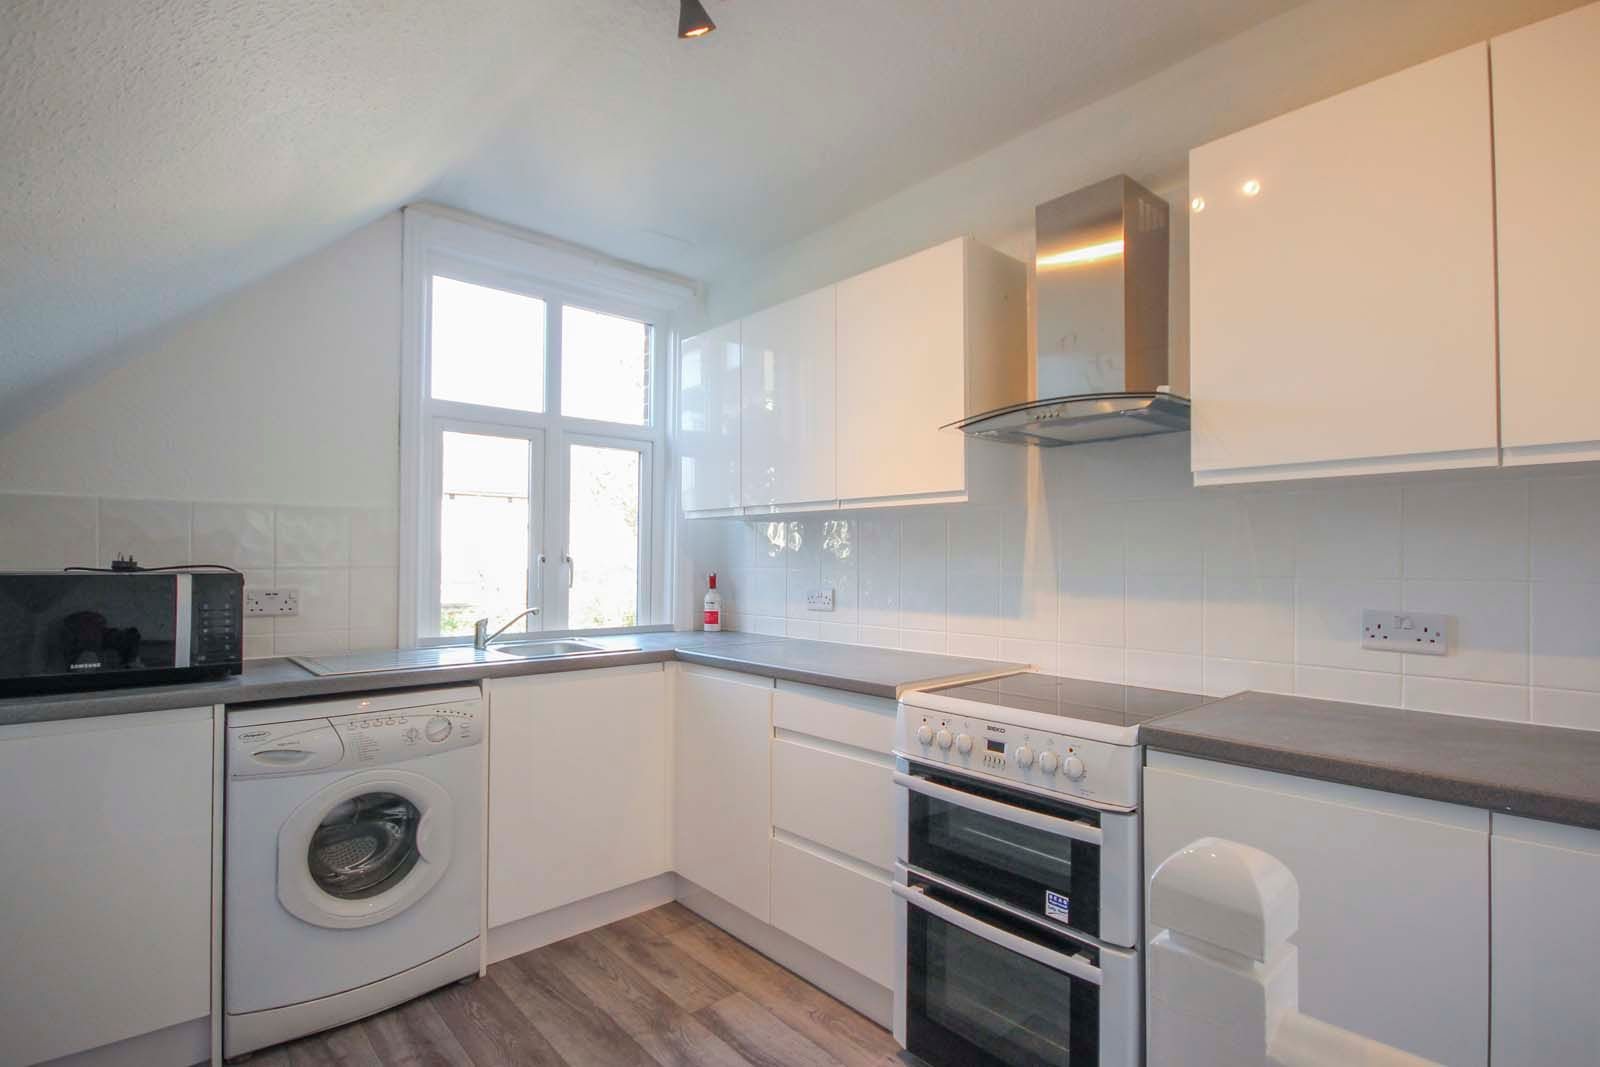 1 bed Apartment to rent in Littlehampton - Kitchen (Property Image 1)